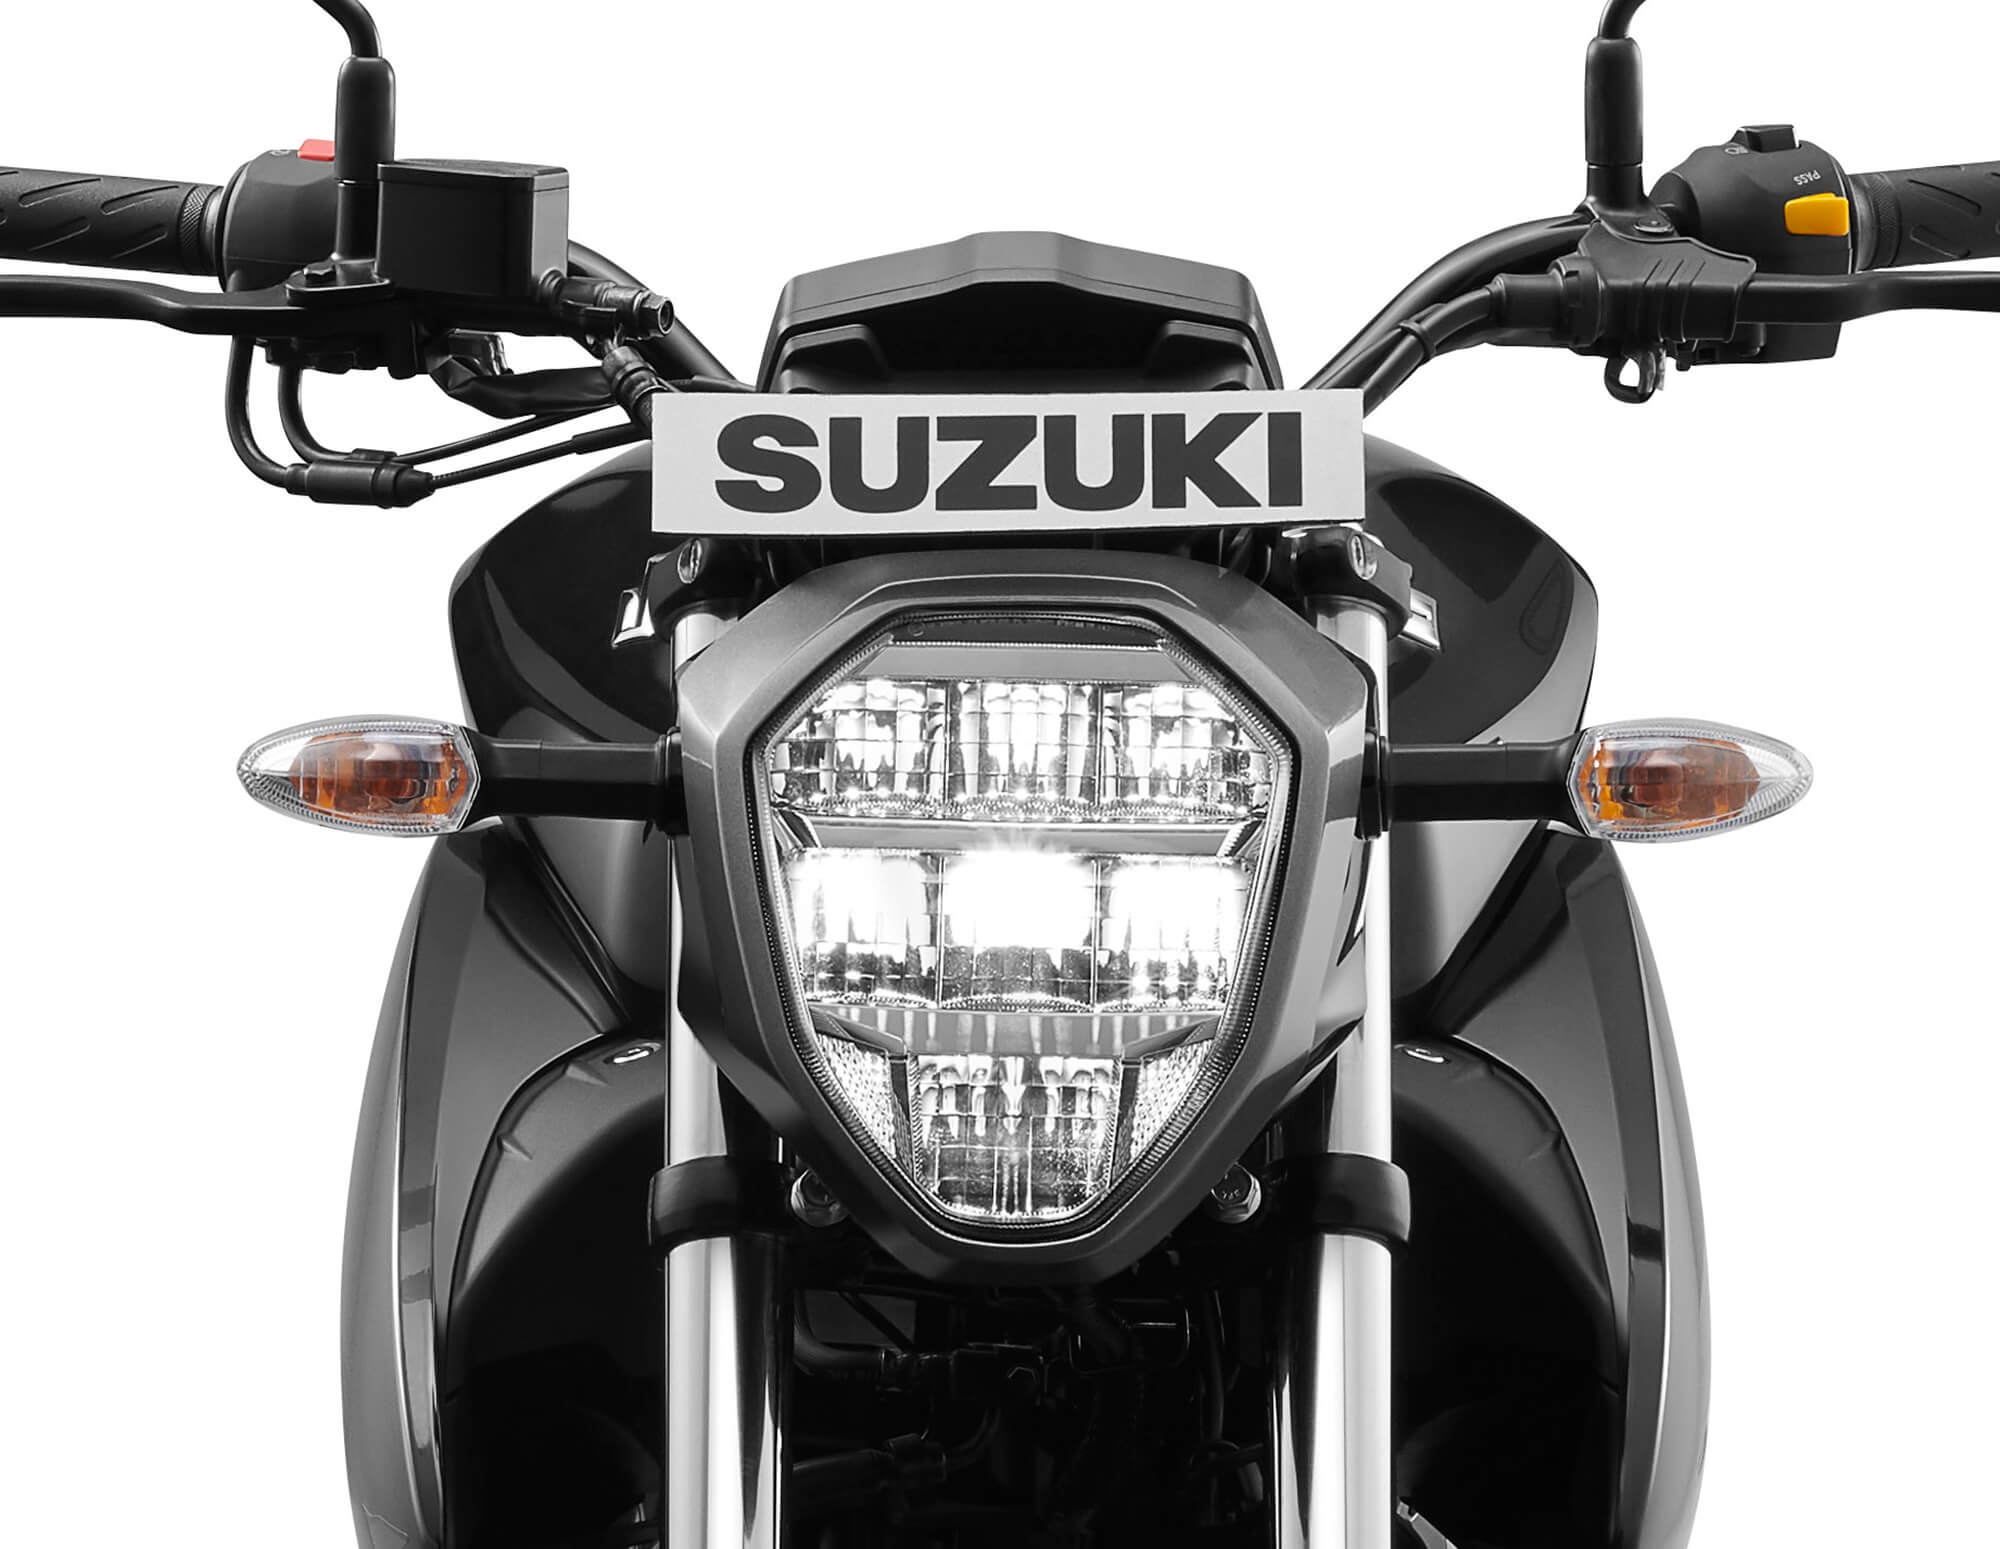 New updated Suzuki Gixxer - back view